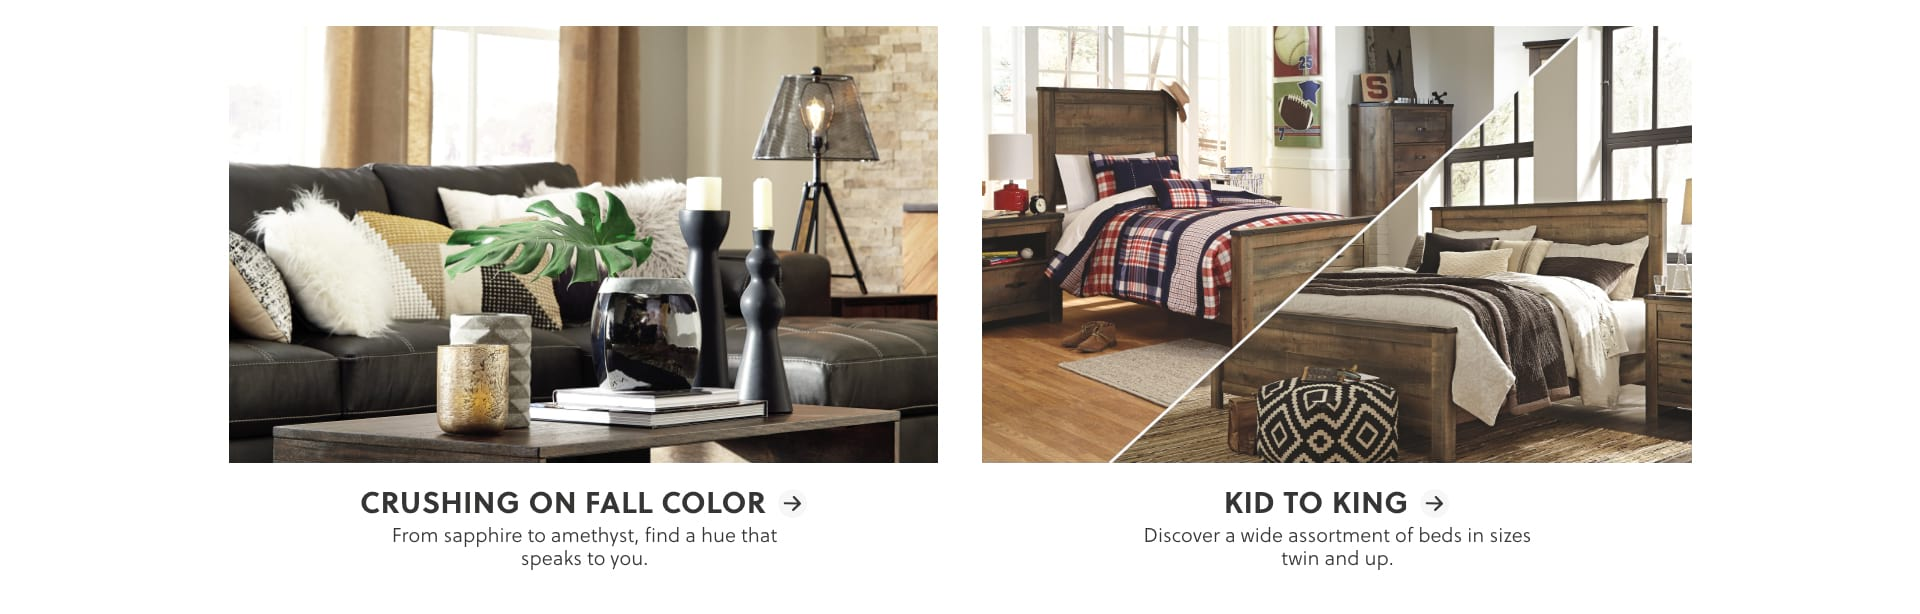 Fall Color Furniture, Beds in every size